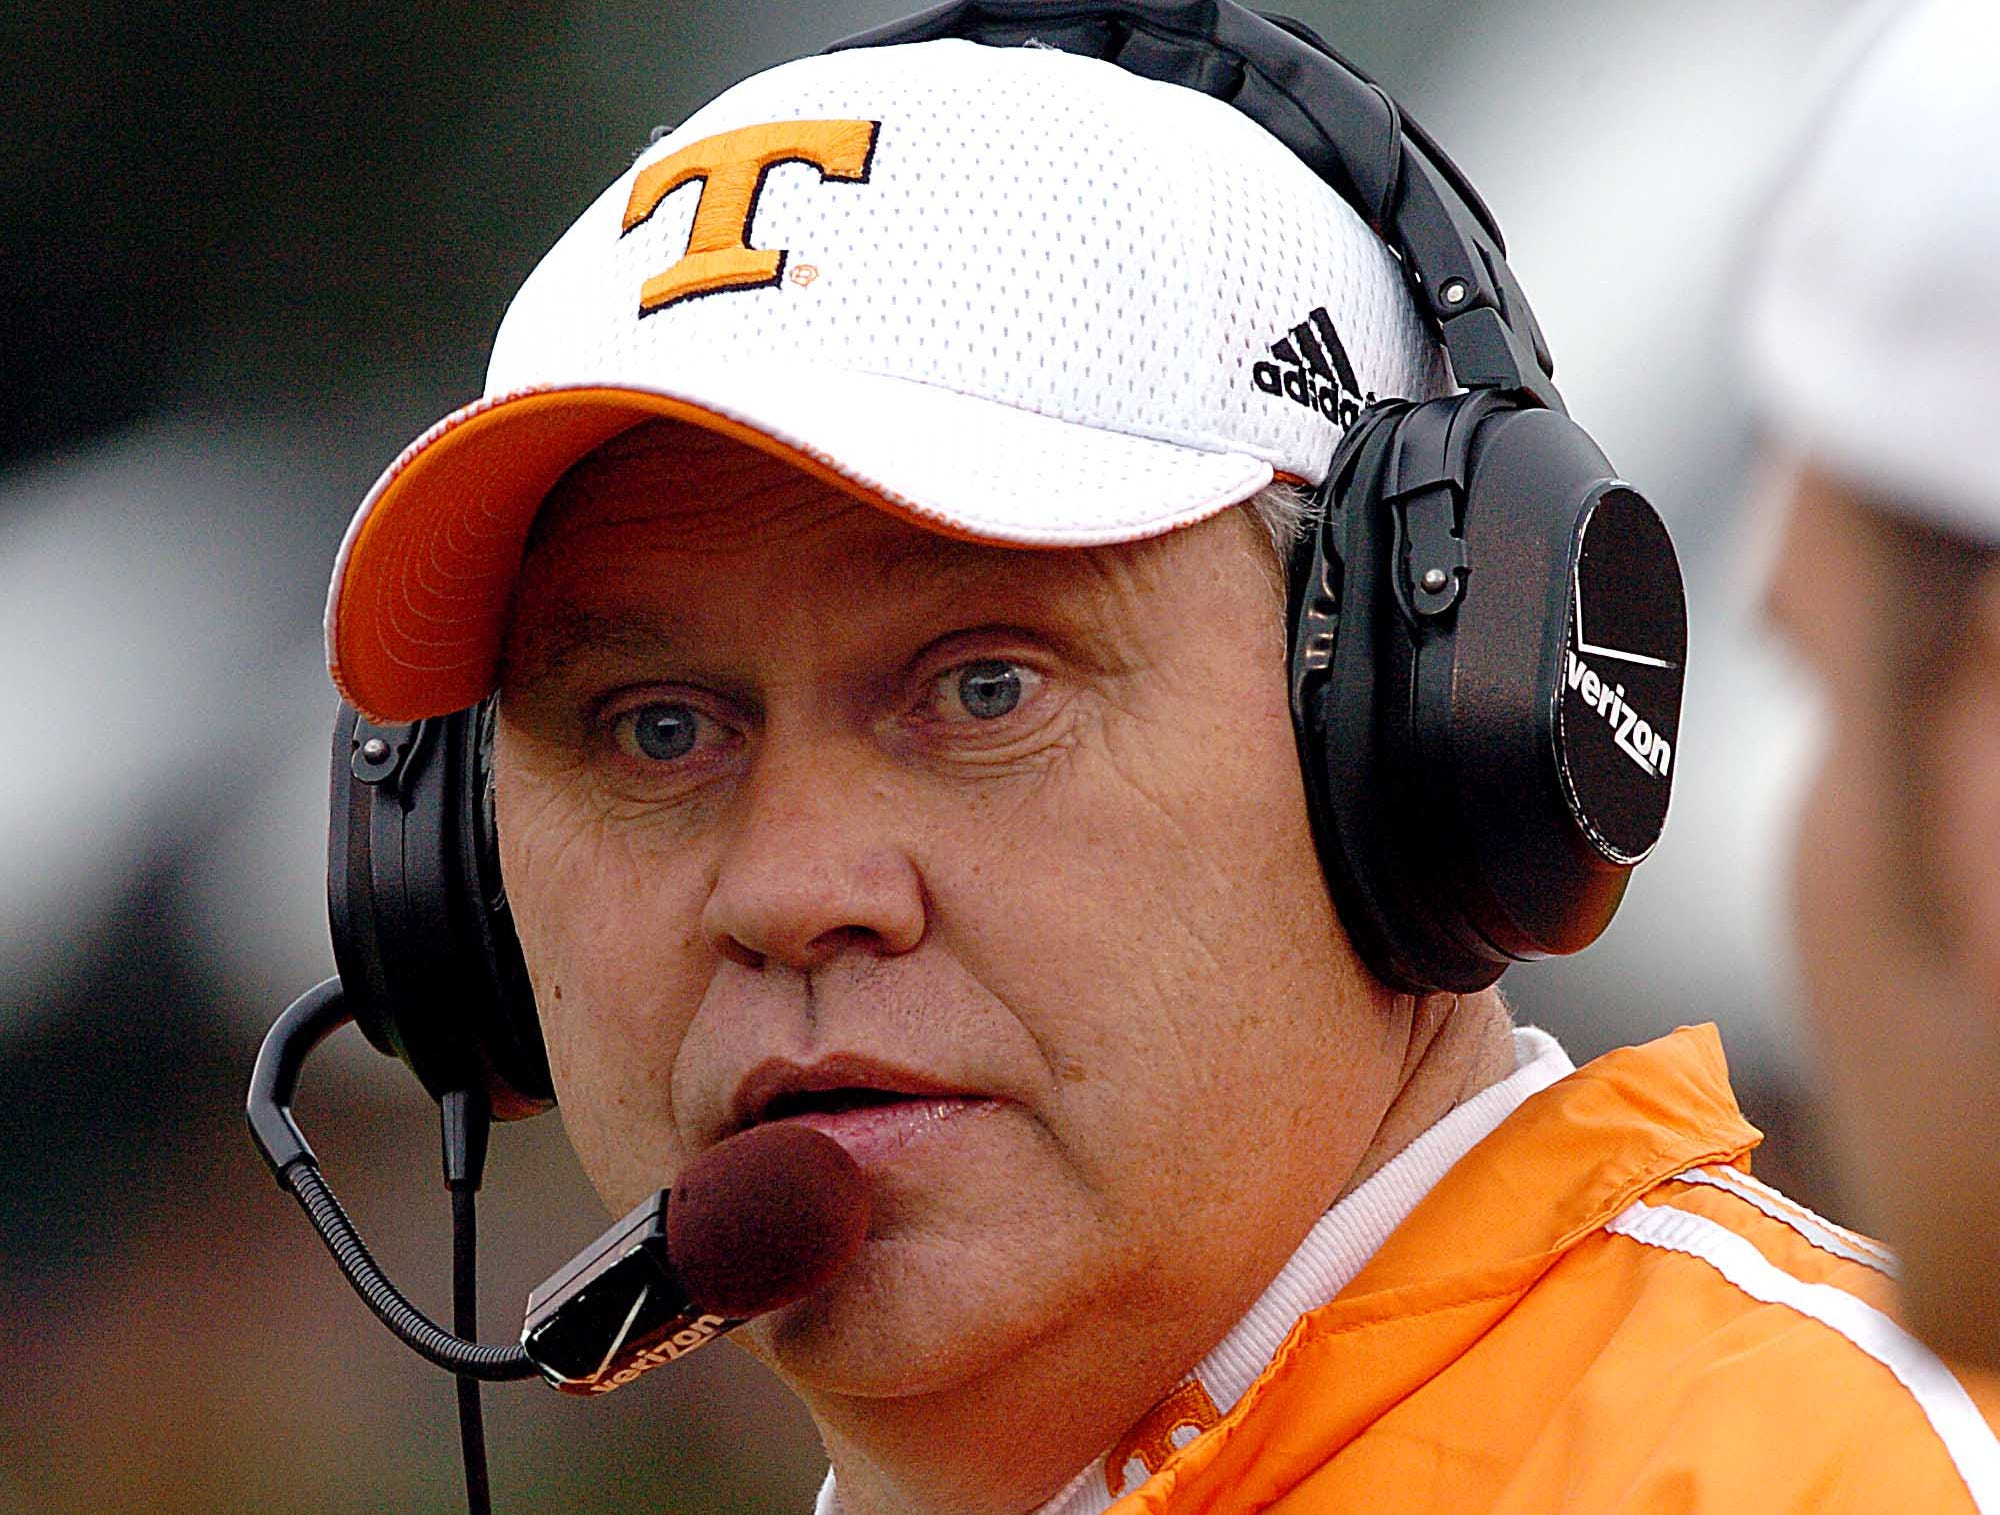 Tennessee head coach Philip Fulmer at Vandy game Saturday, Nov. 20, 2004 in Nashville.